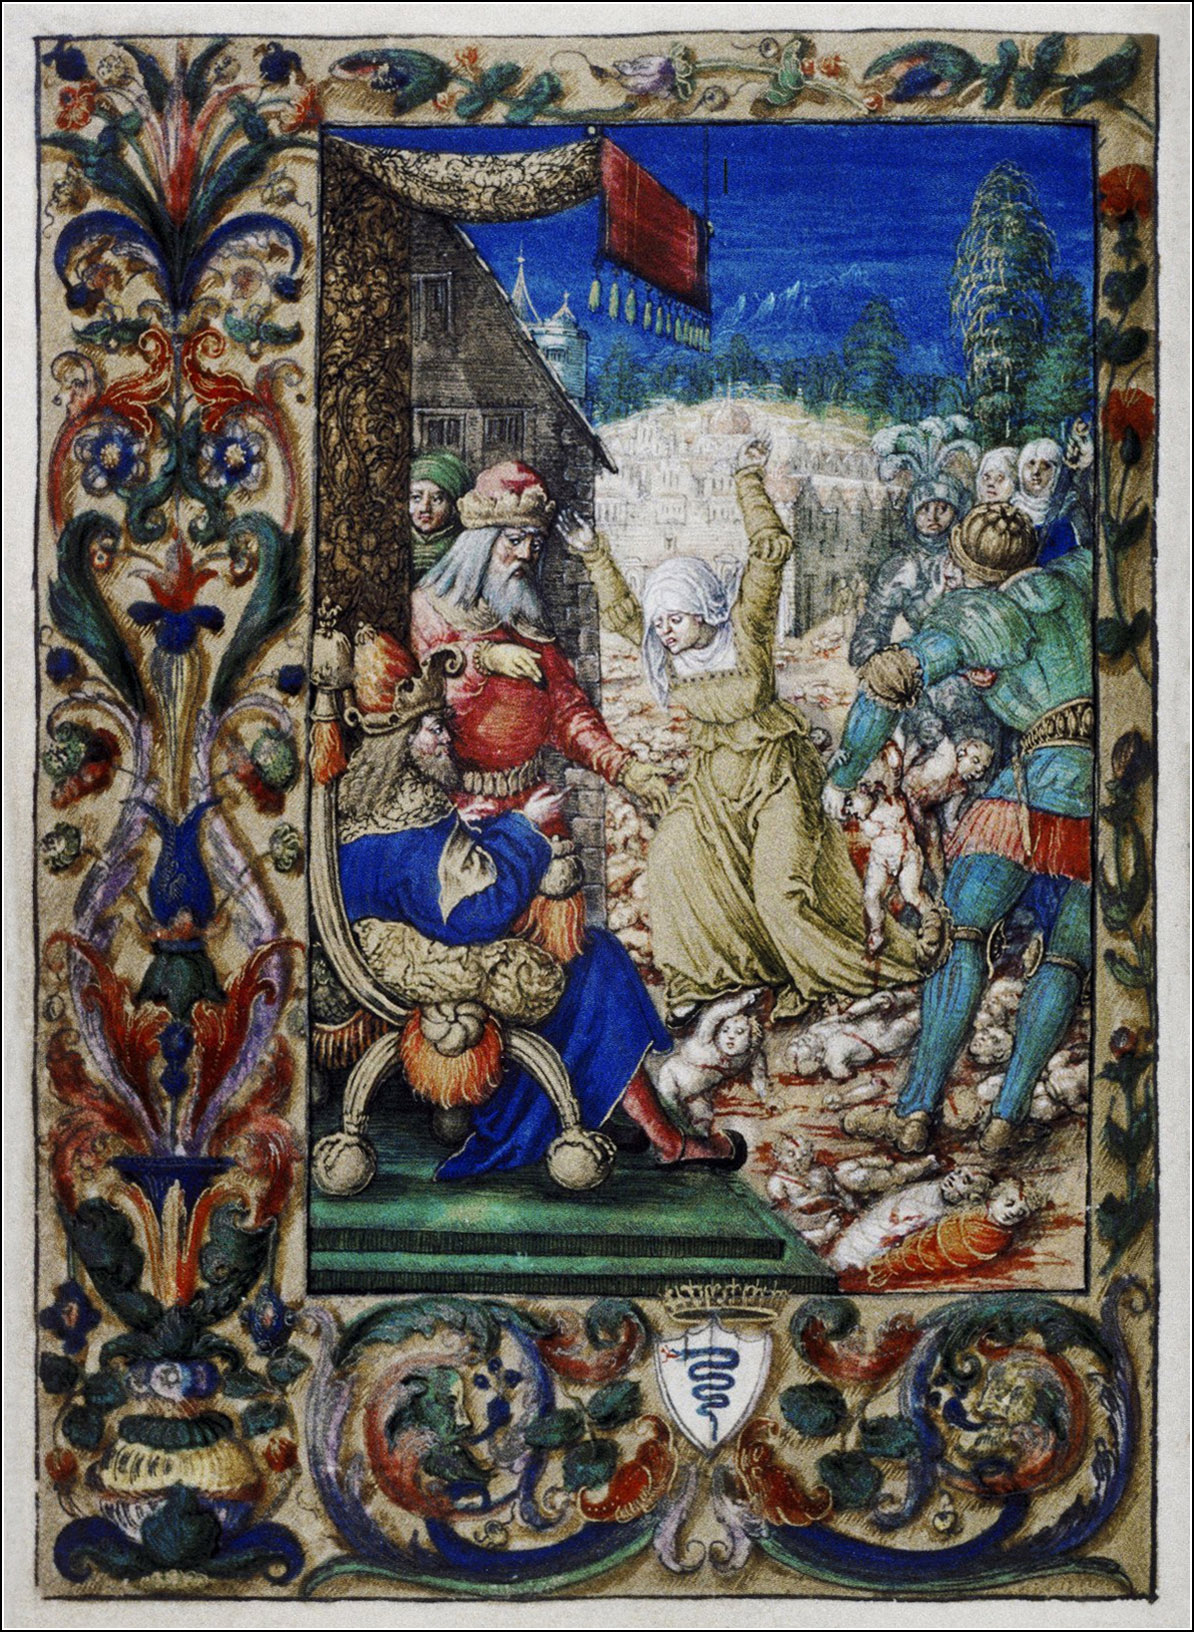 Book_of_Hours_of_Queen_Bona%2C_fol.87v.j